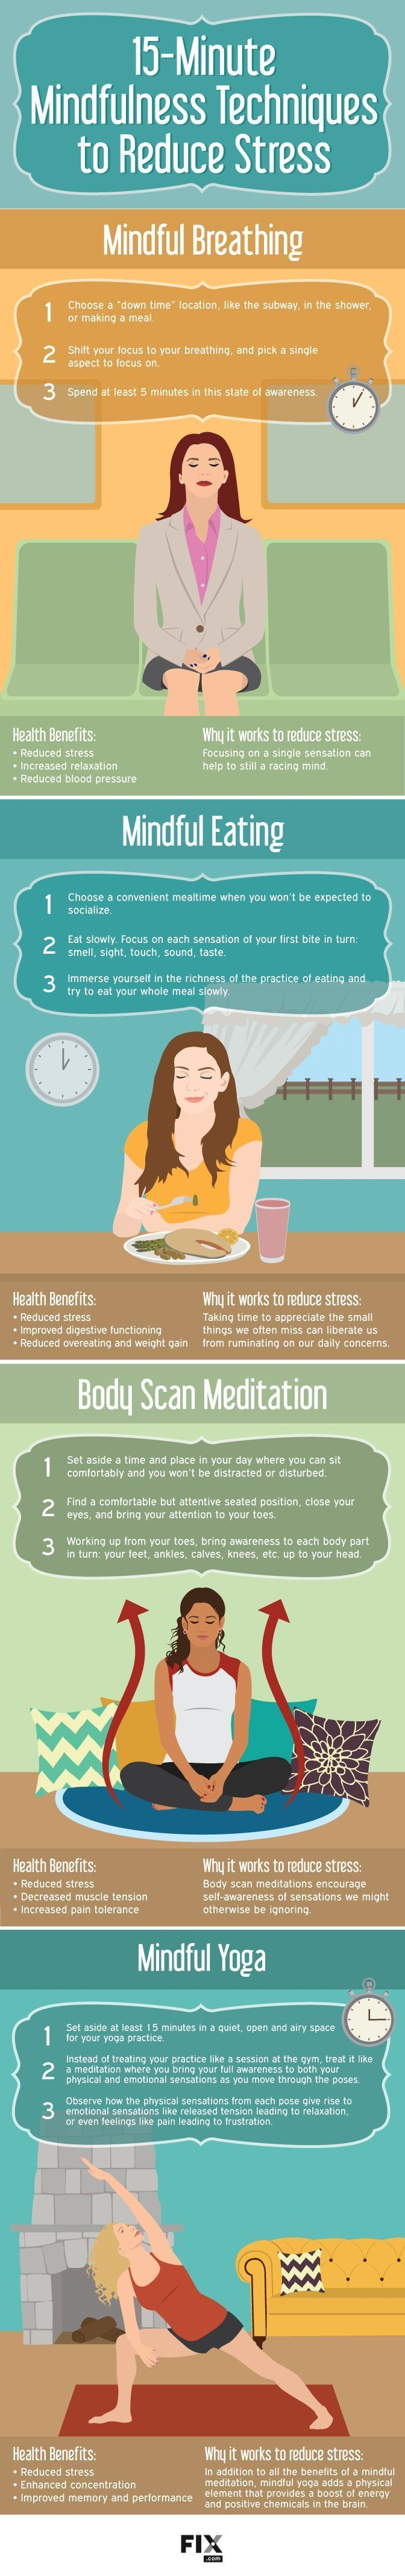 Taking a few moments everyday to reflect can reduce stress and increase quality of life! Here are 5 mindfulness tips to reduce anxiety and improve health. #mindfulness #metime #health